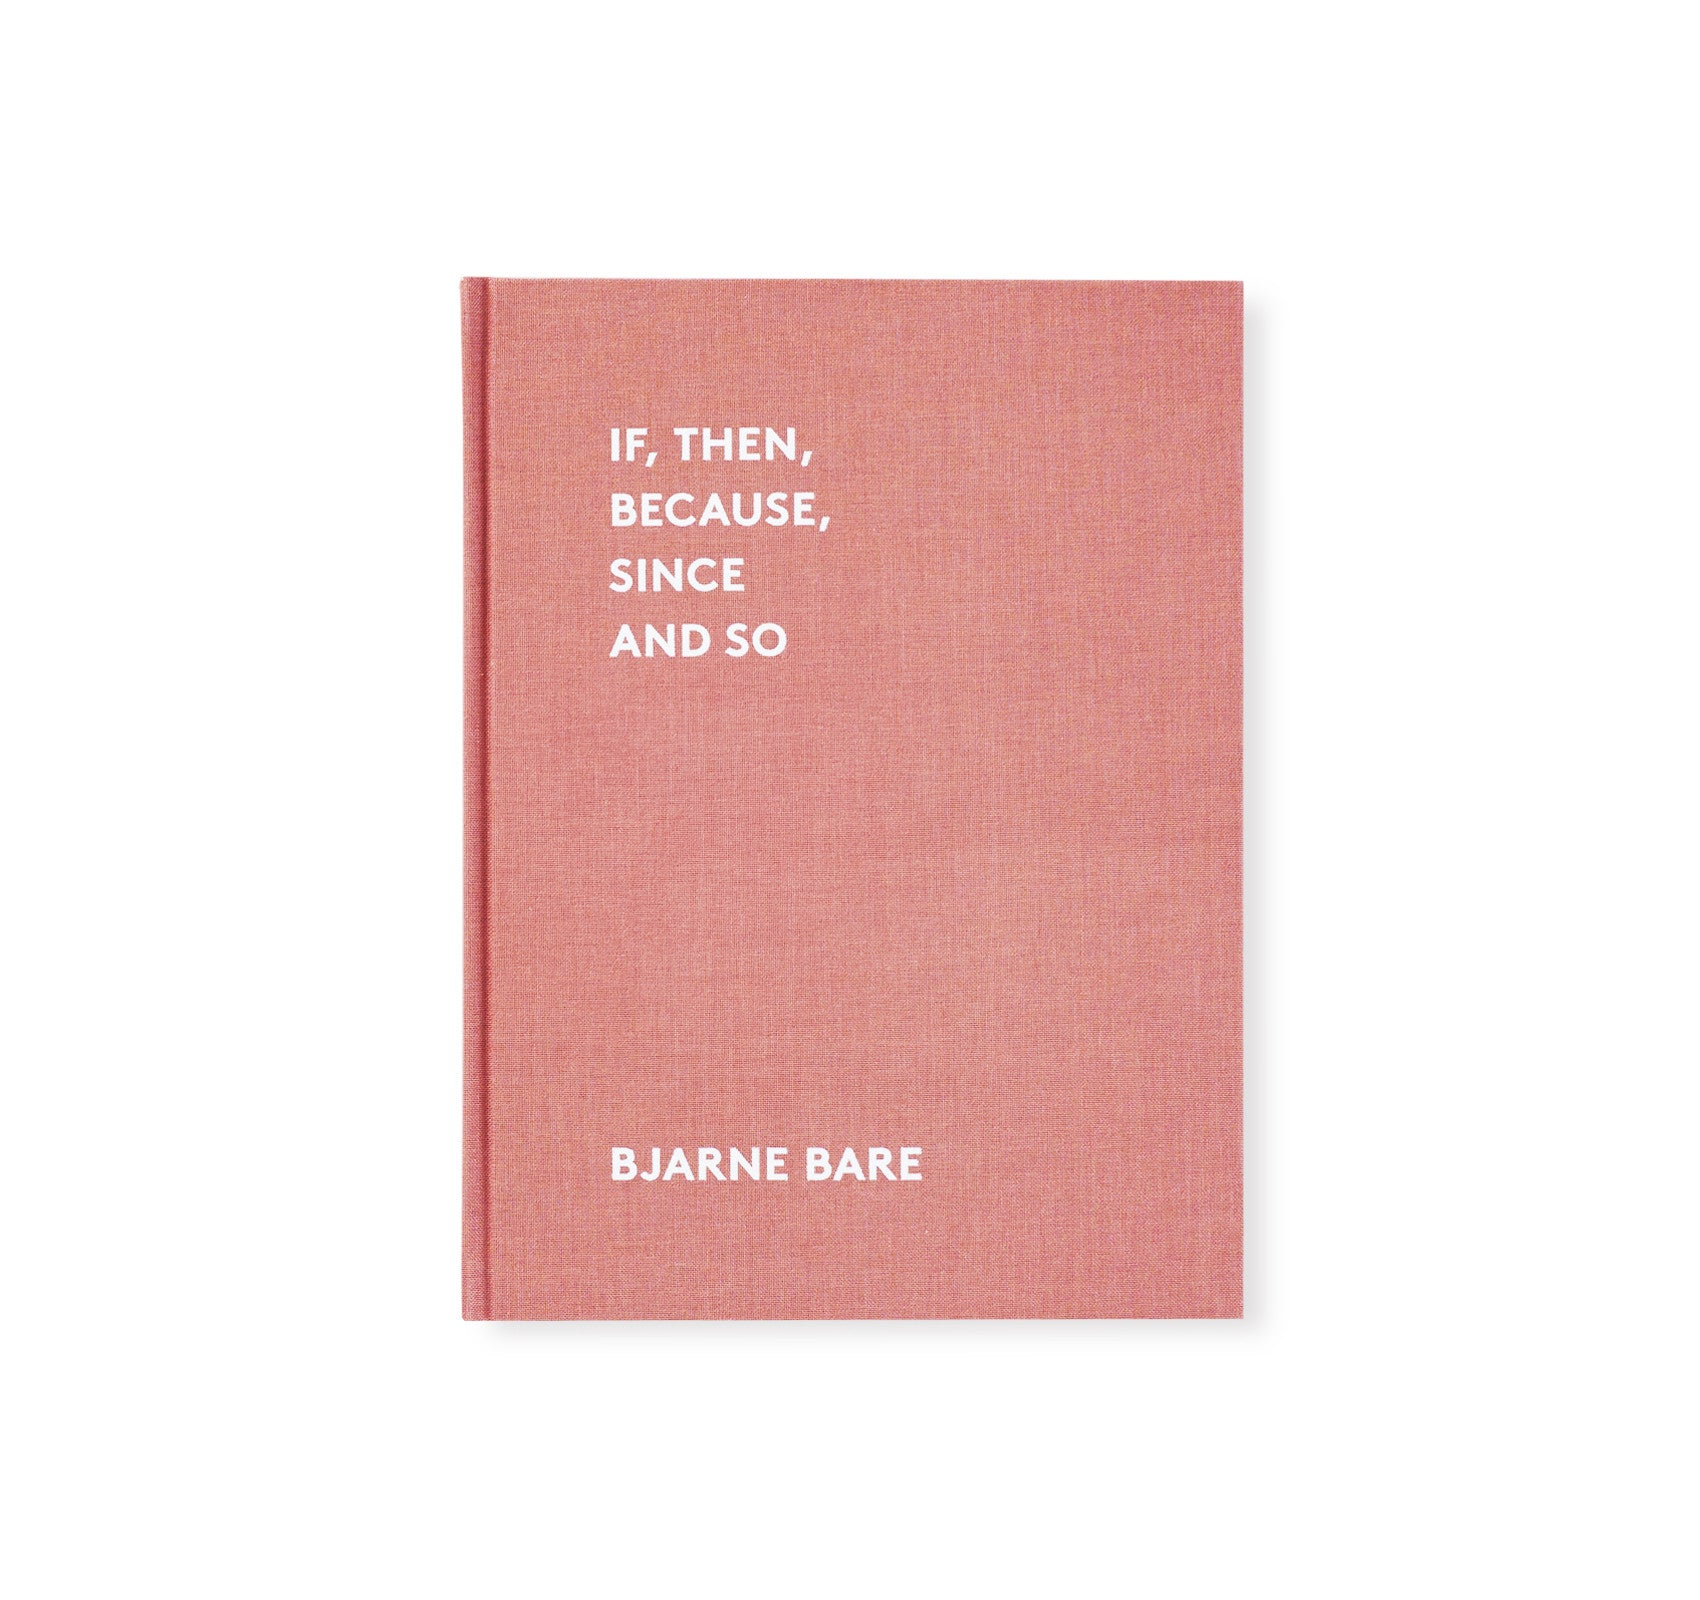 IF, THEN, BECAUSE, SINCE AND SO by Bjarne Bare